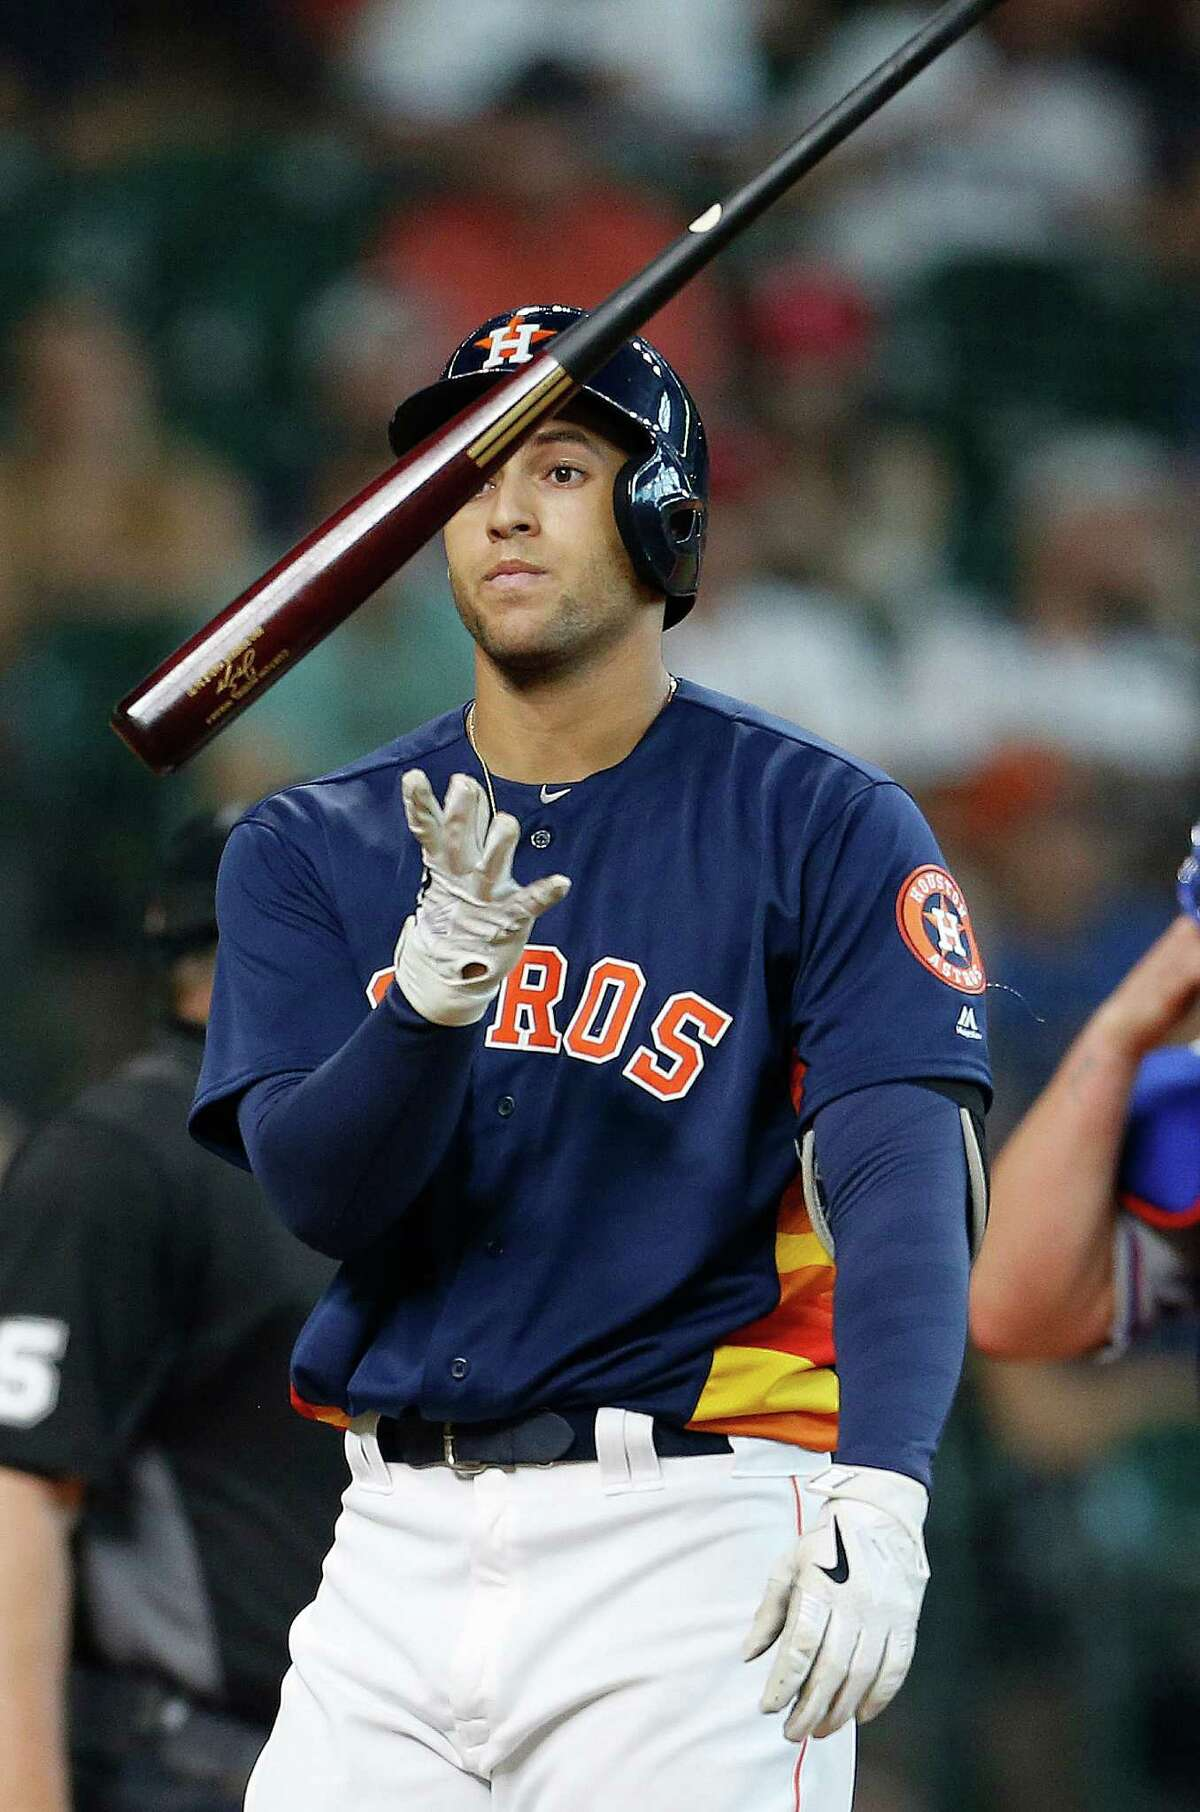 Houston Astros right fielder George Springer (4) reacts after striking out during the eighth inning of an MLB baseball game at Minute Maid Park, Sunday, May 22, 2016.